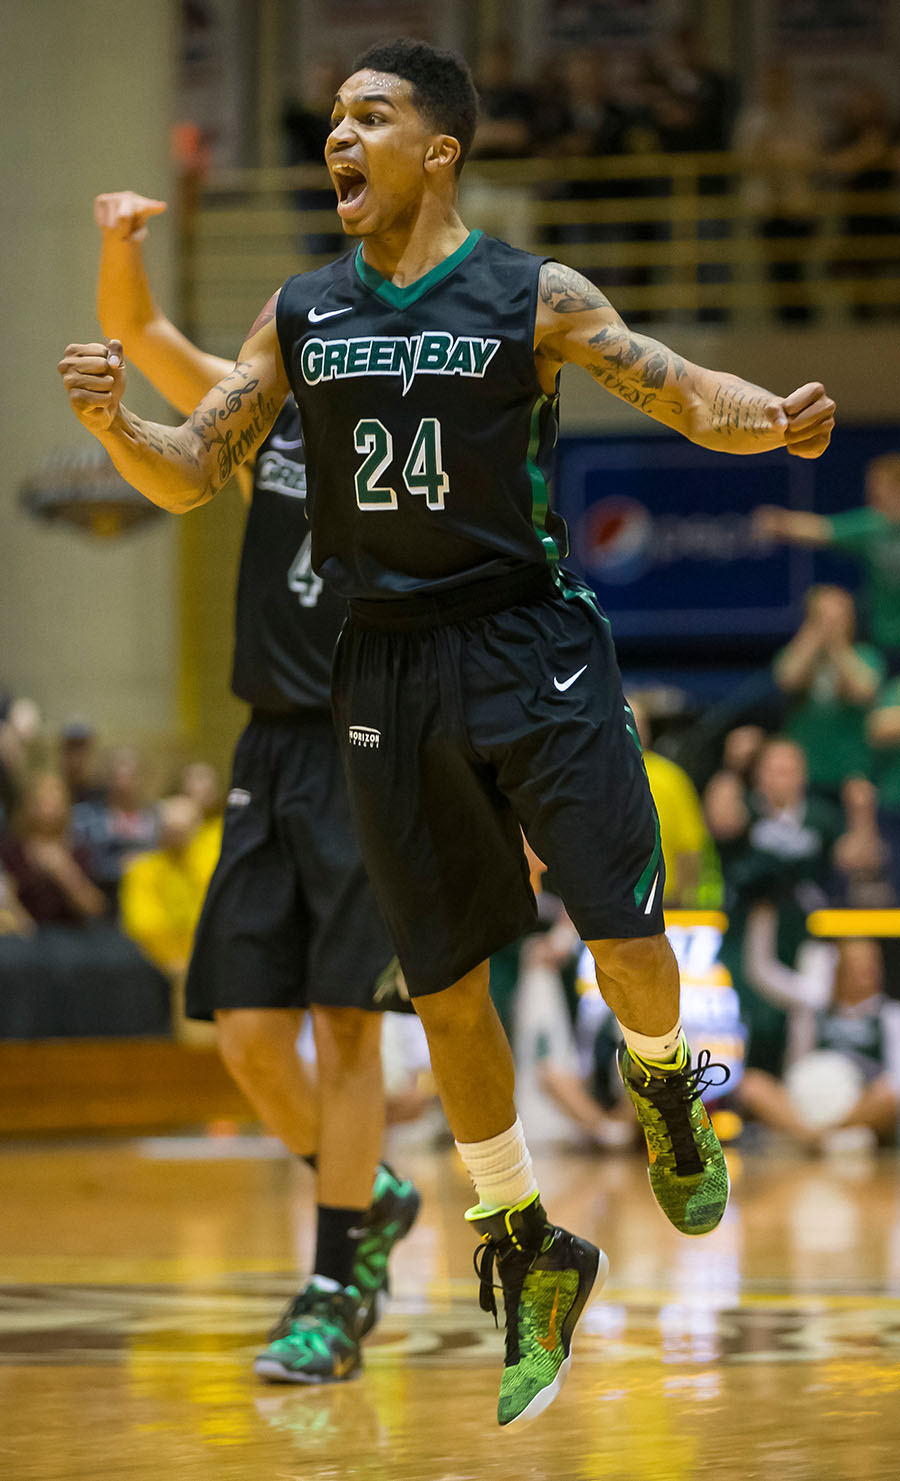 Green Bay men's basketball player Kiefer Sykes celebrates a basket during the Horizon League Championship. The Phoenix would go on to lose the game